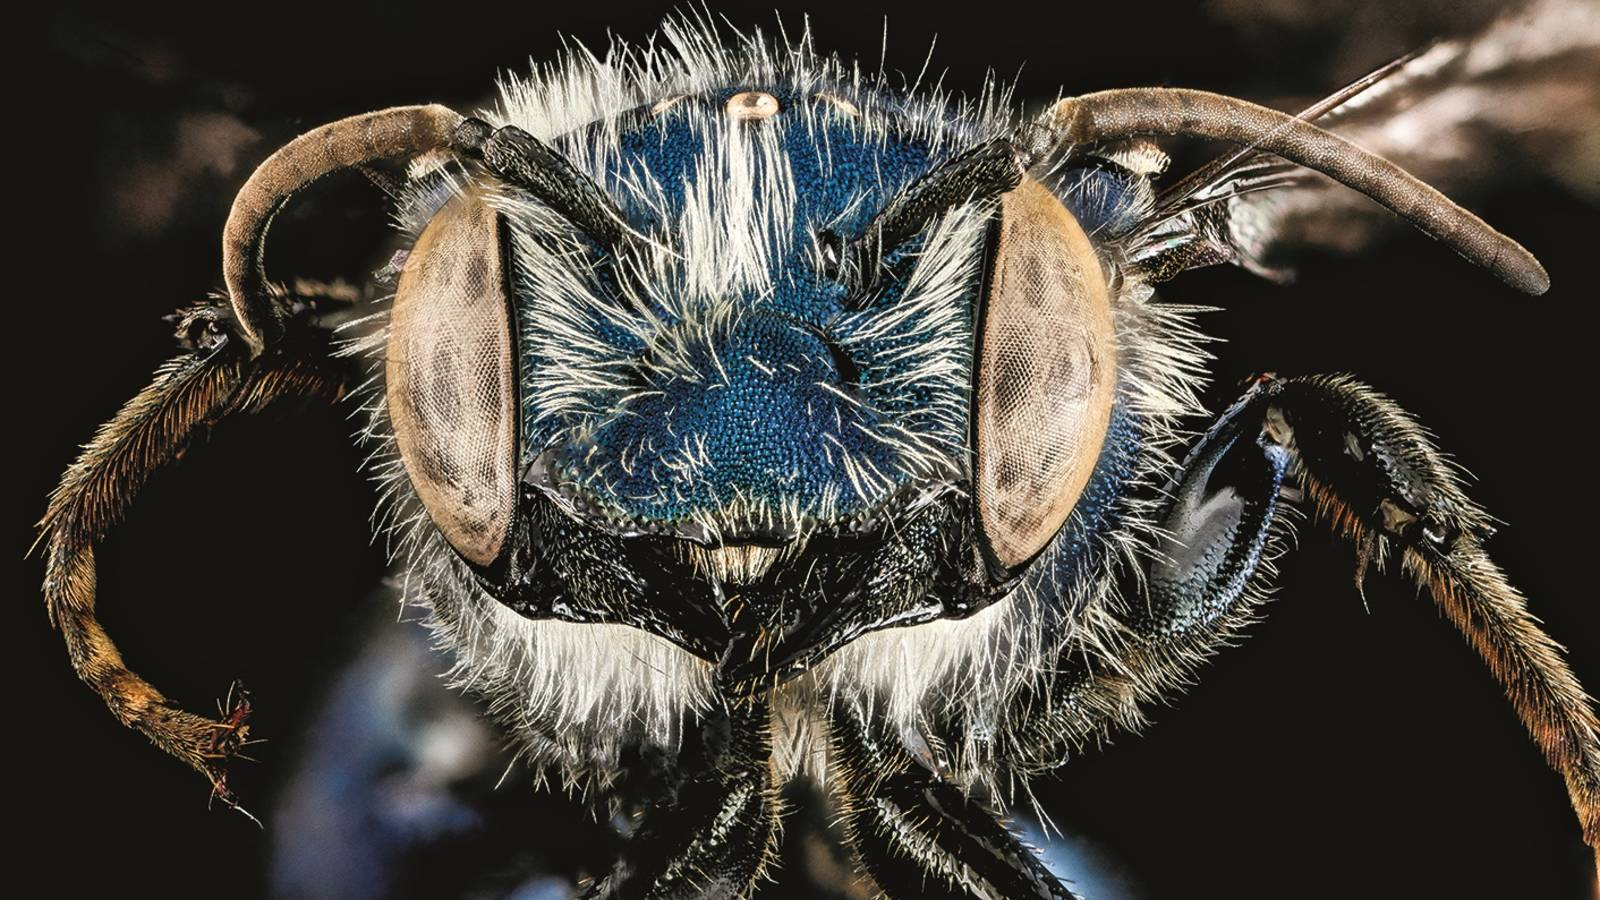 """<h3 style=""""text-align: center; padding: 50px;""""><span class=""""text-Intro-style""""><em>Osmia chalybea</em> (bee), Cumberland Island National Seashore, Georgia. © SAM DROEGE/USGS BEE INVENTORY AND MONITORING LAB</span></h3>"""